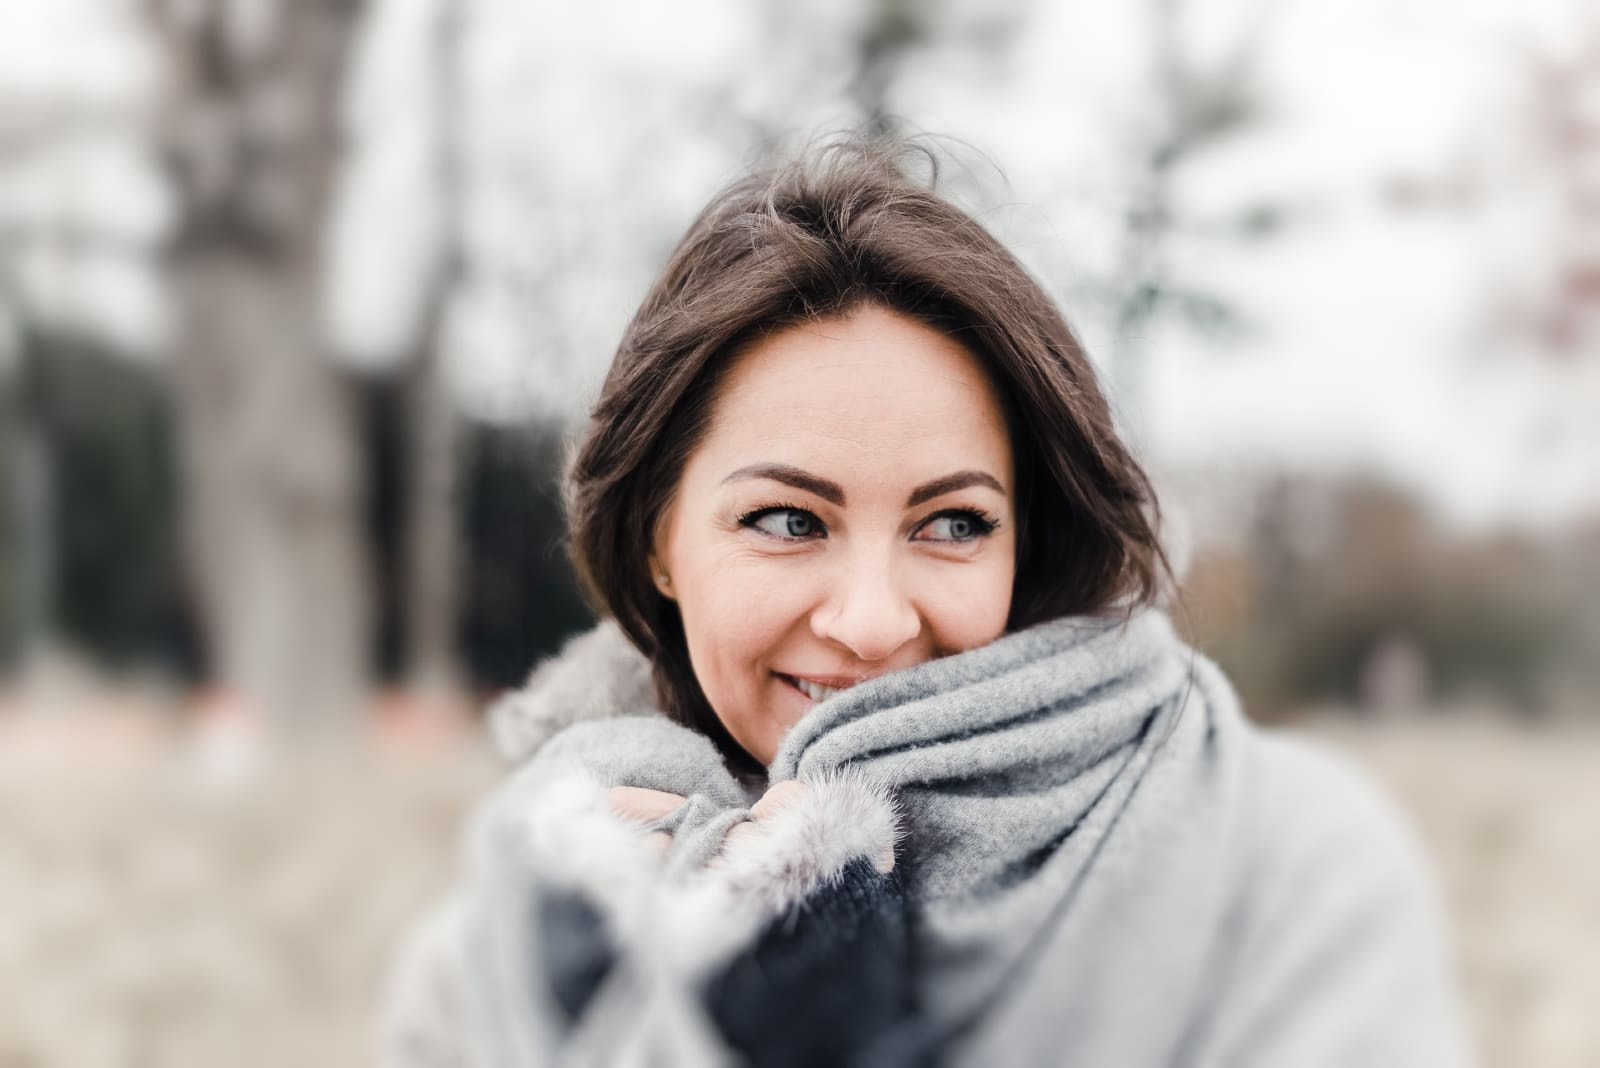 woman in gray coat smiling while standing outdoor